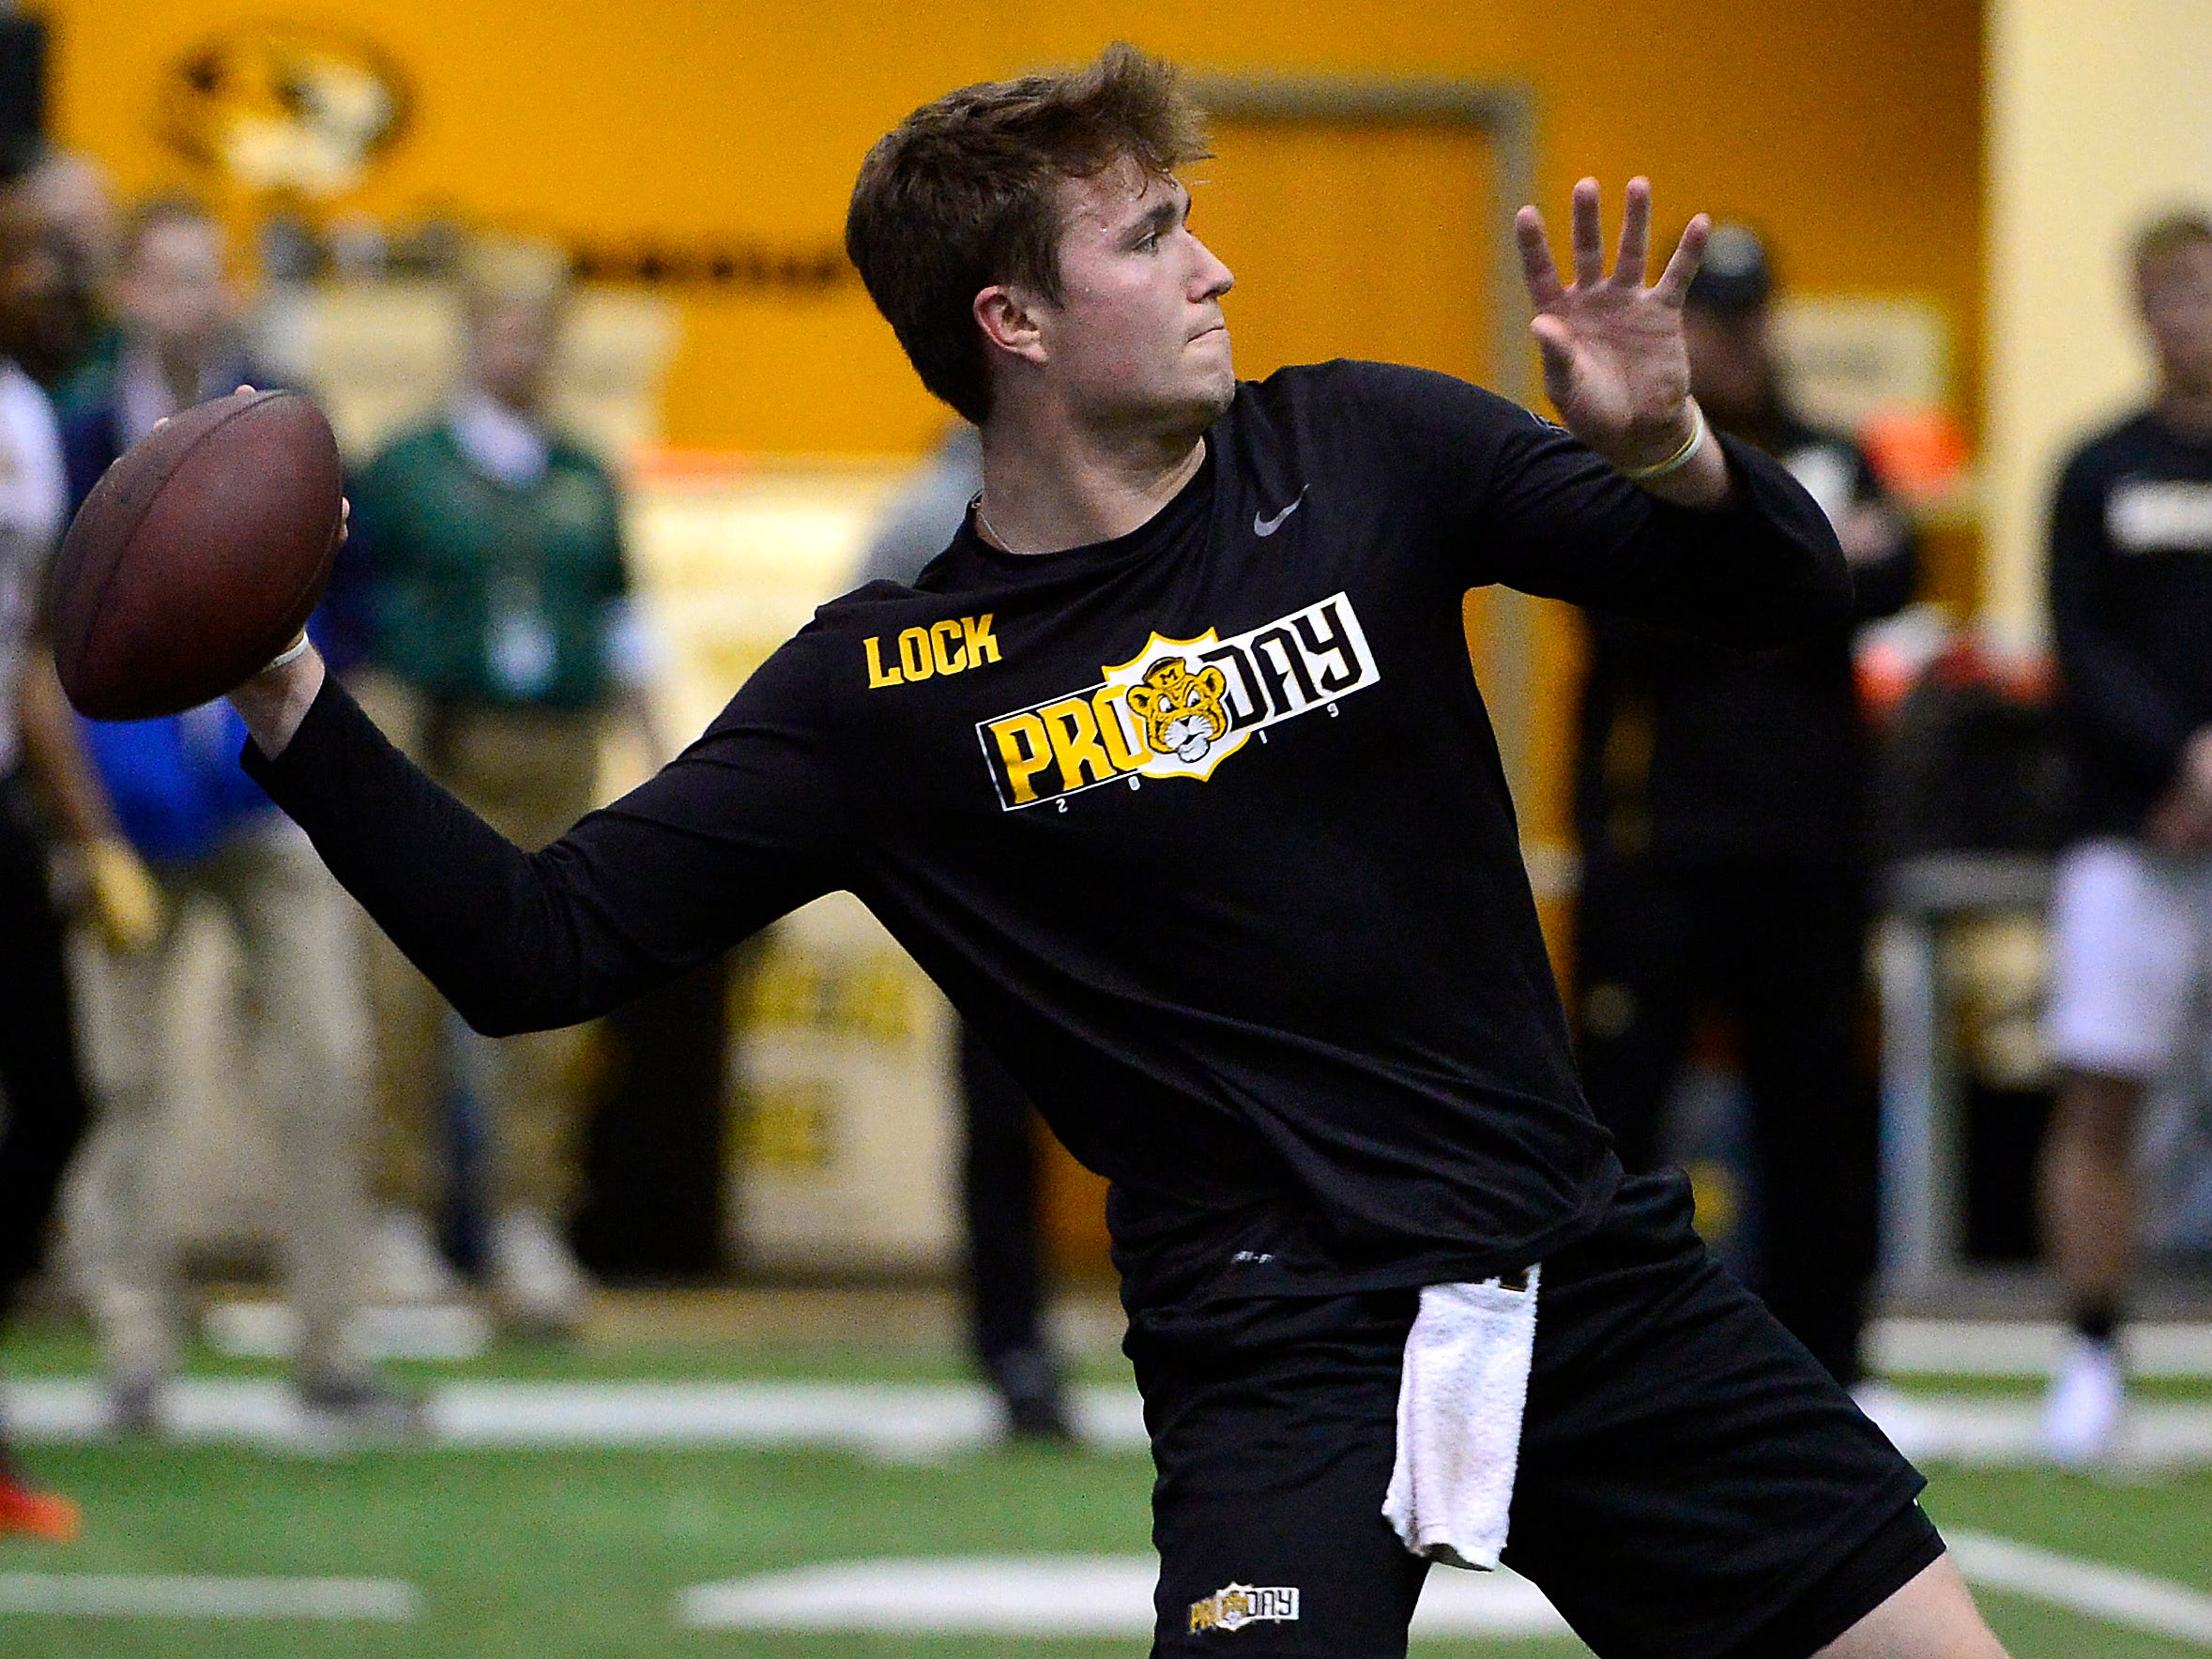 17. Giants (from Browns) - Drew Lock, QB, Missouri